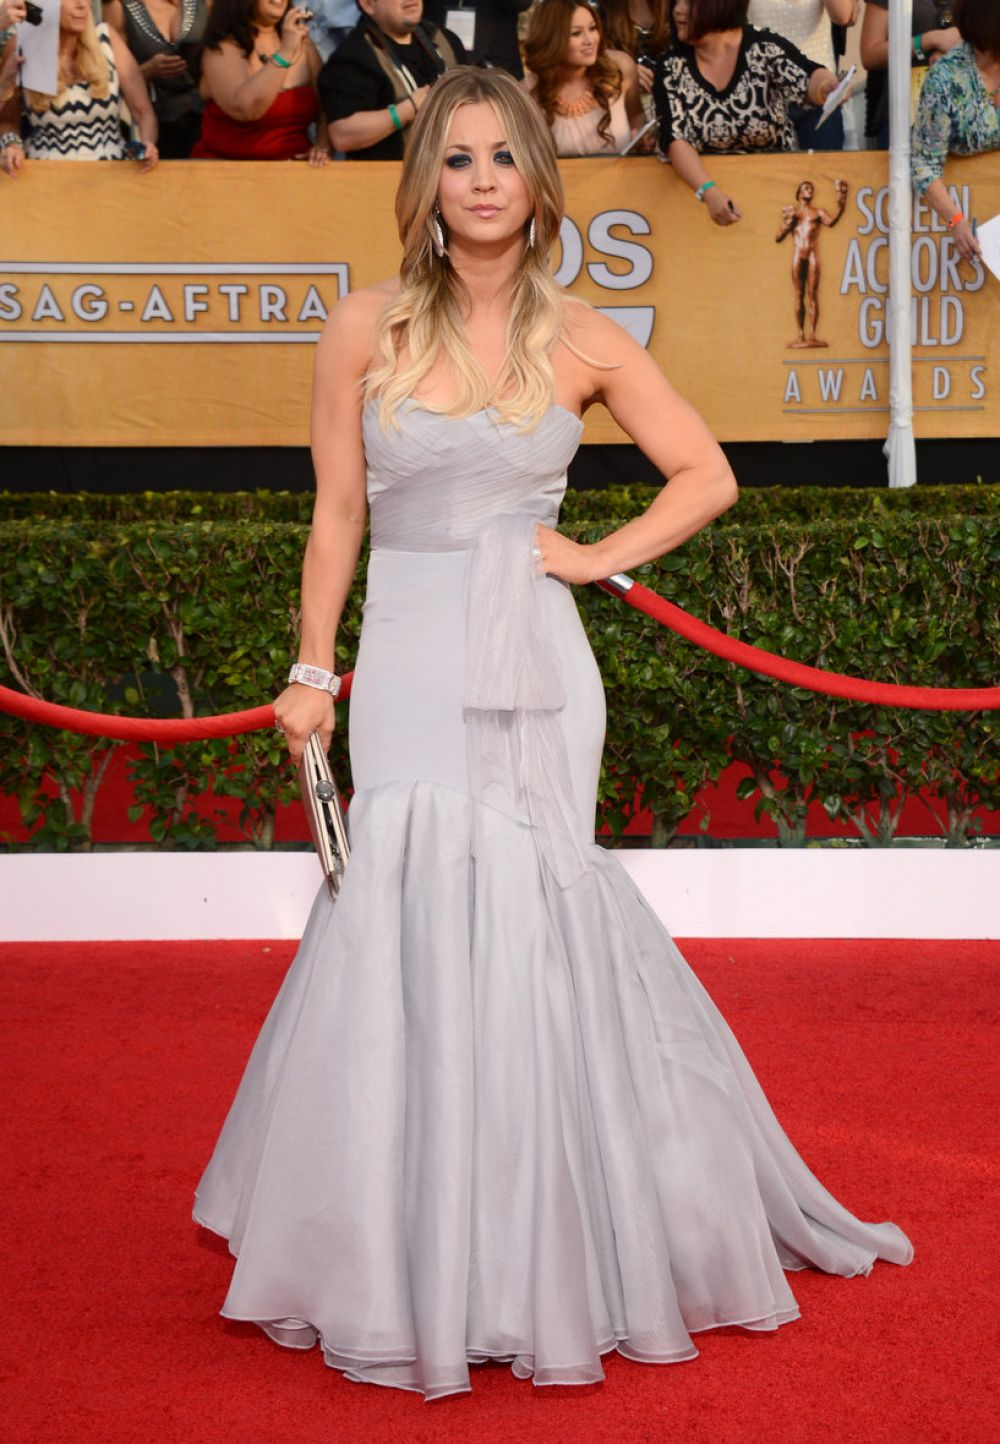 KALEY CUOCO at 2014 SAG Awards in Los Angeles